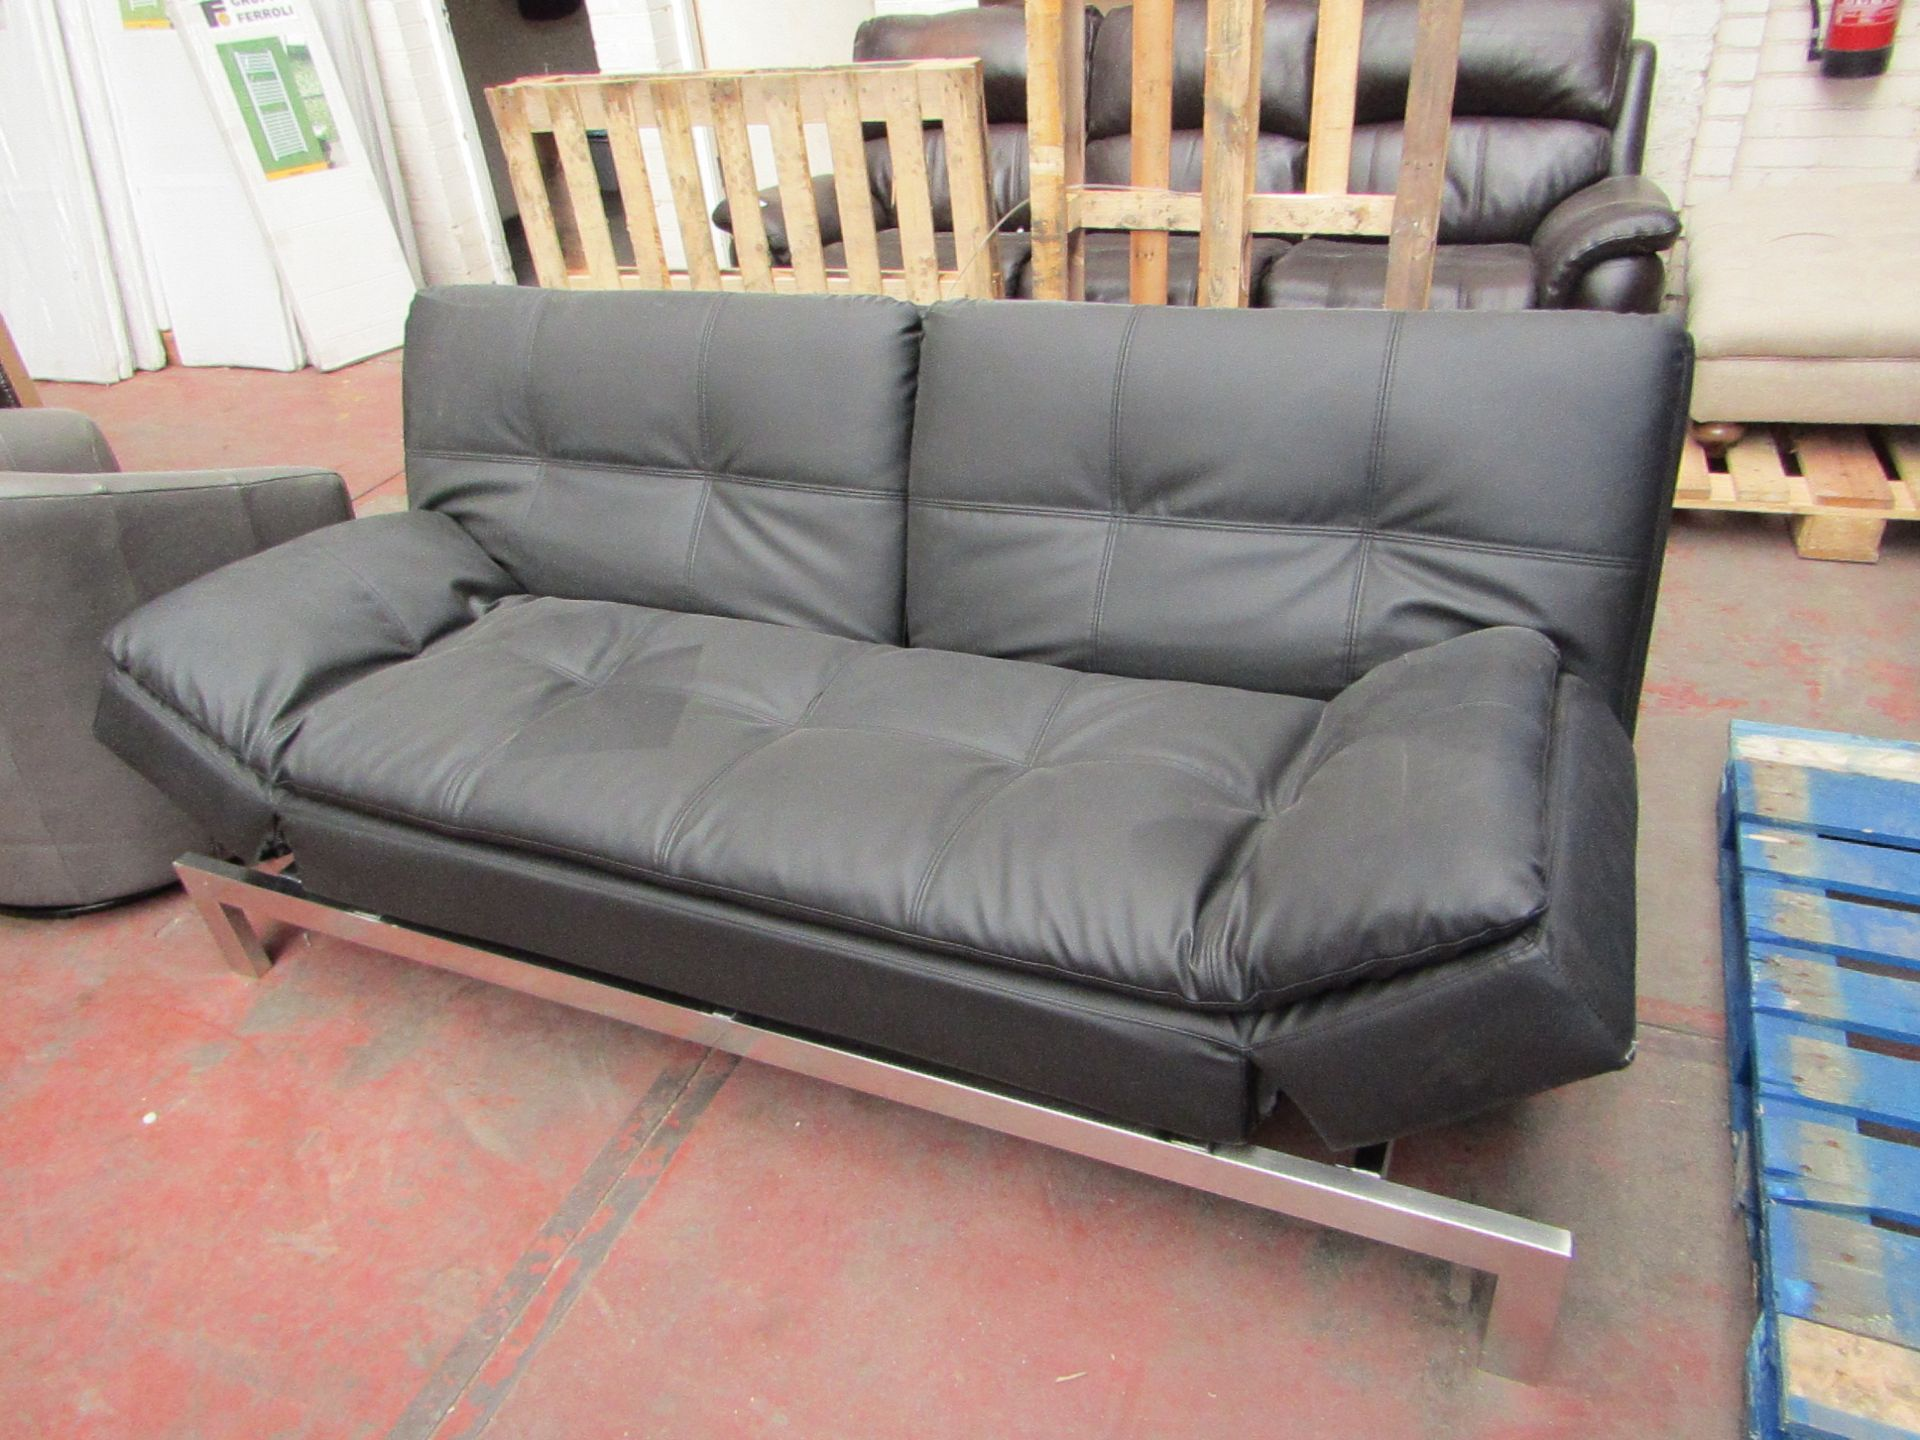 Lot 11 - Lifestyle solutions Sofa bed, the back folds down to form a double bed the just pulls back up to